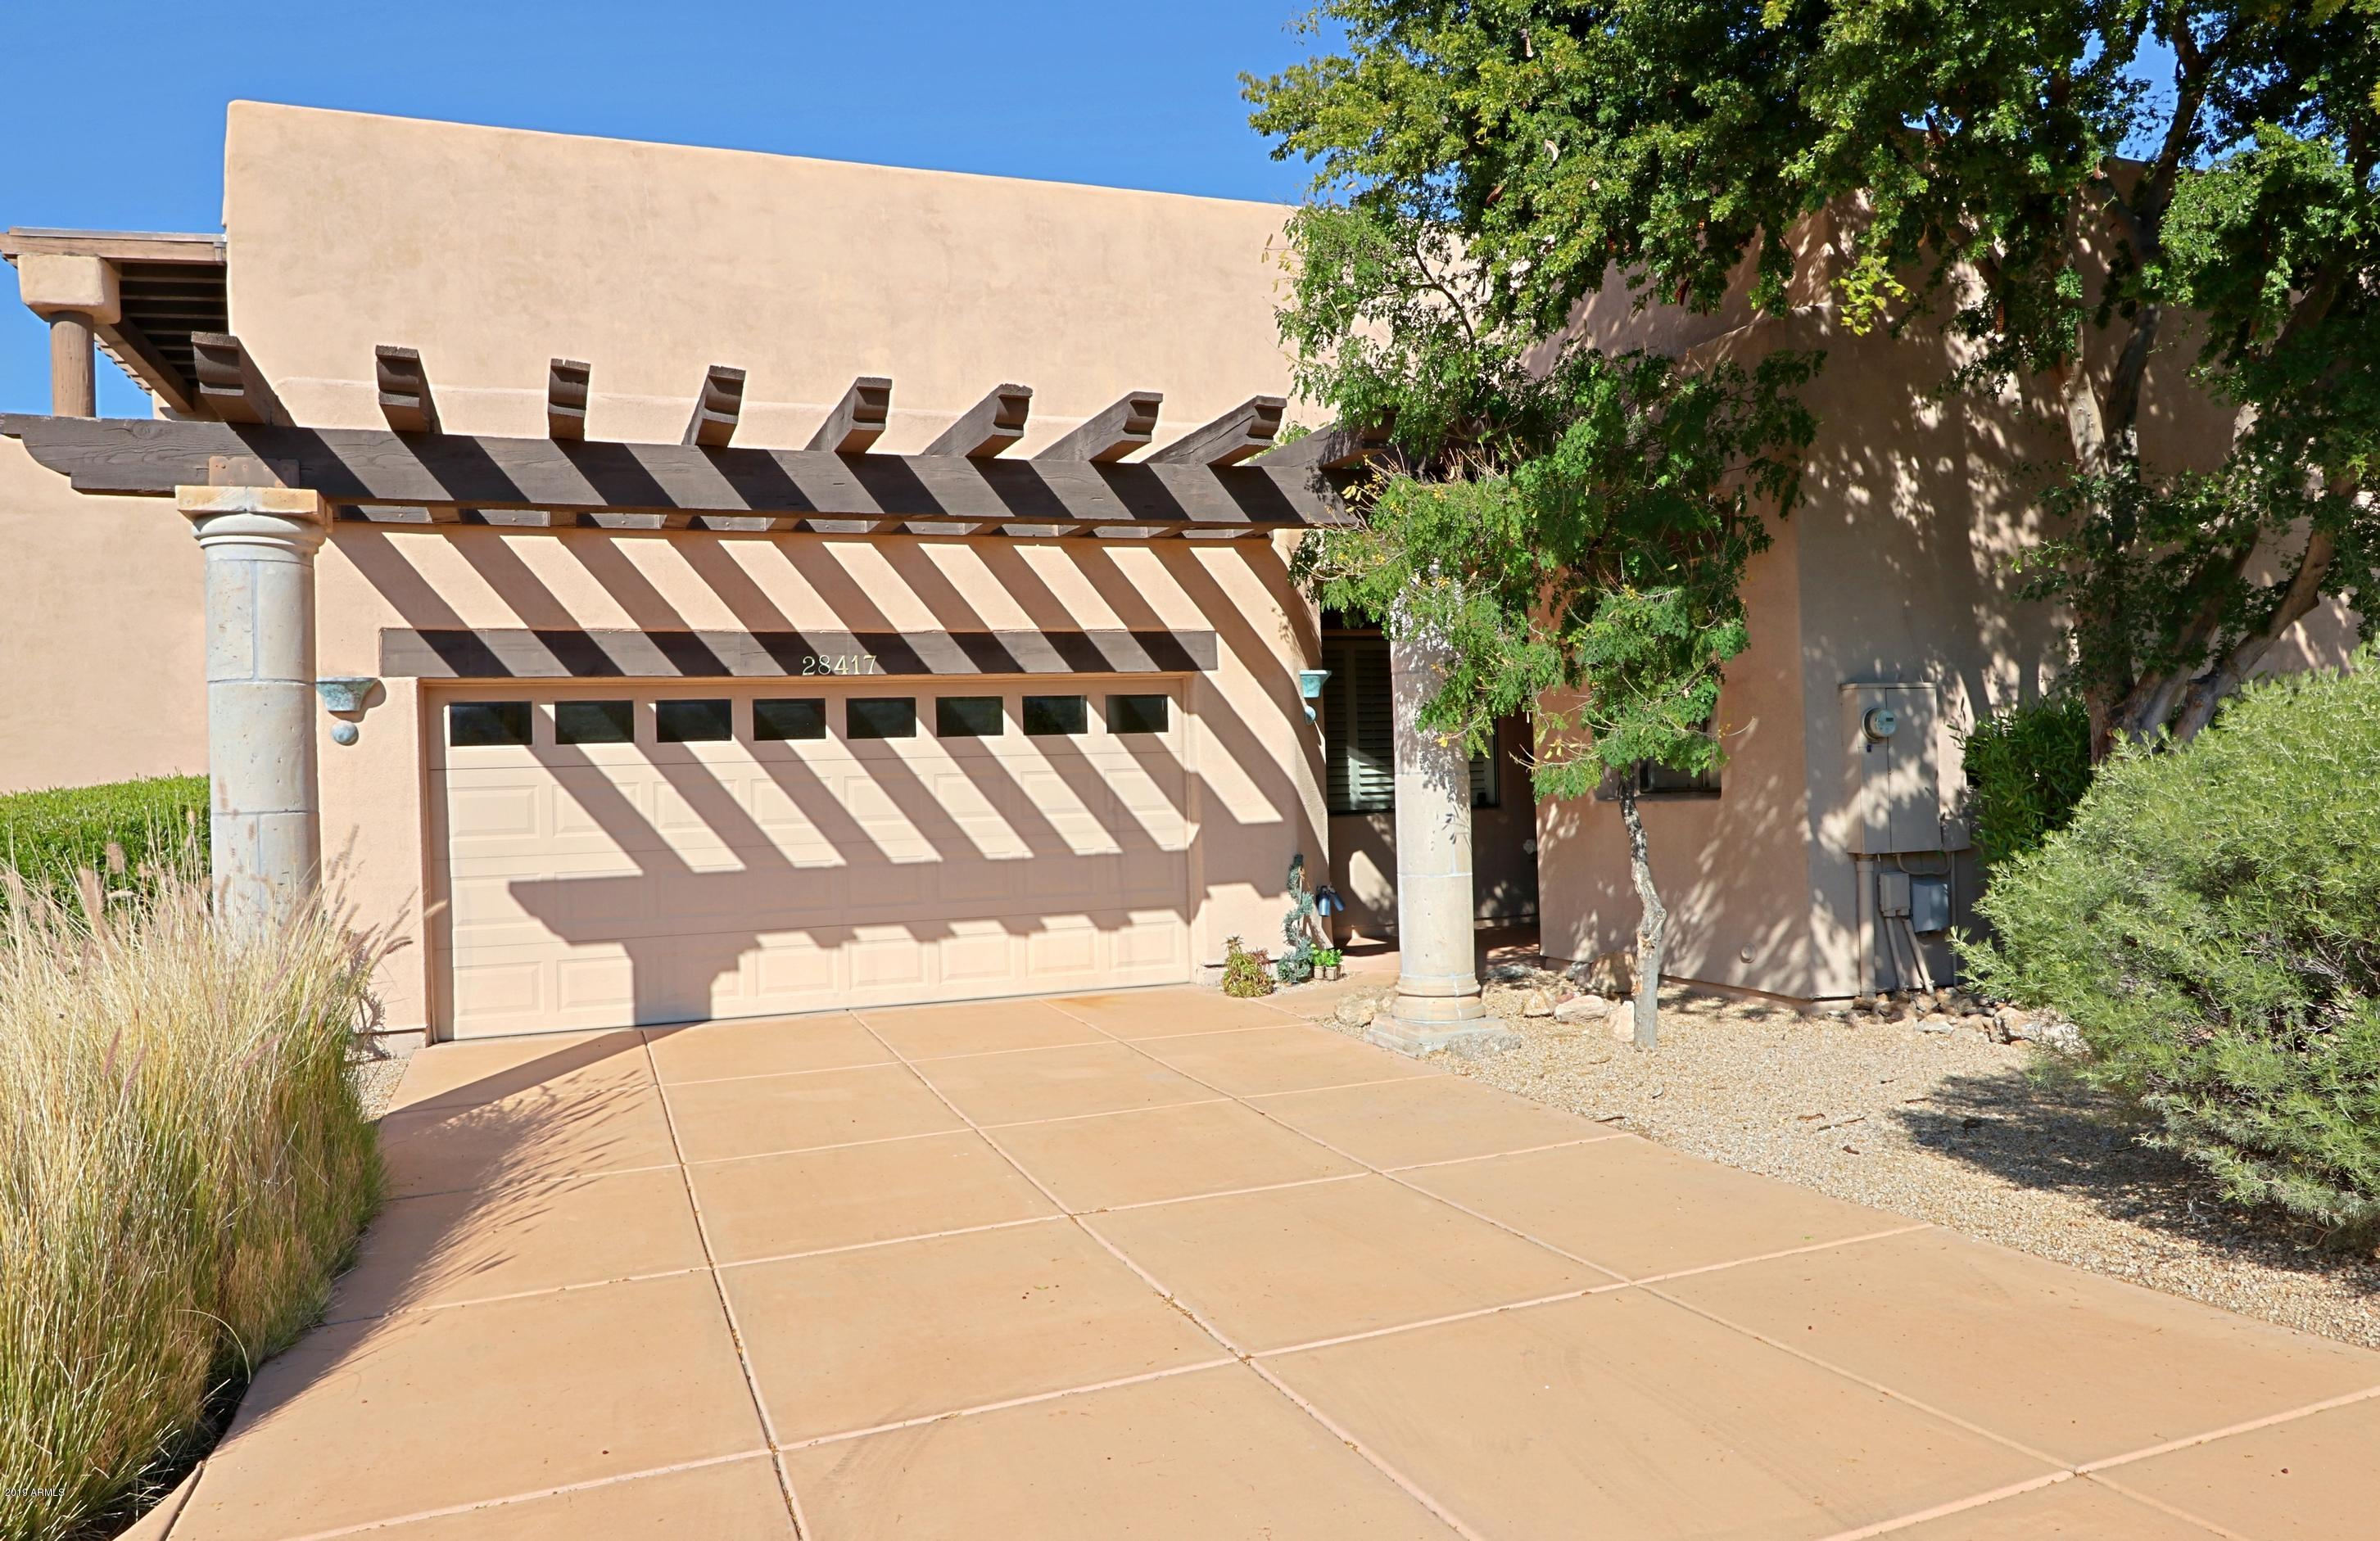 28417 N 101ST Place, Scottsdale, Arizona 85262, 2 Bedrooms Bedrooms, ,Residential Lease,For Rent,28417 N 101ST Place,5866897